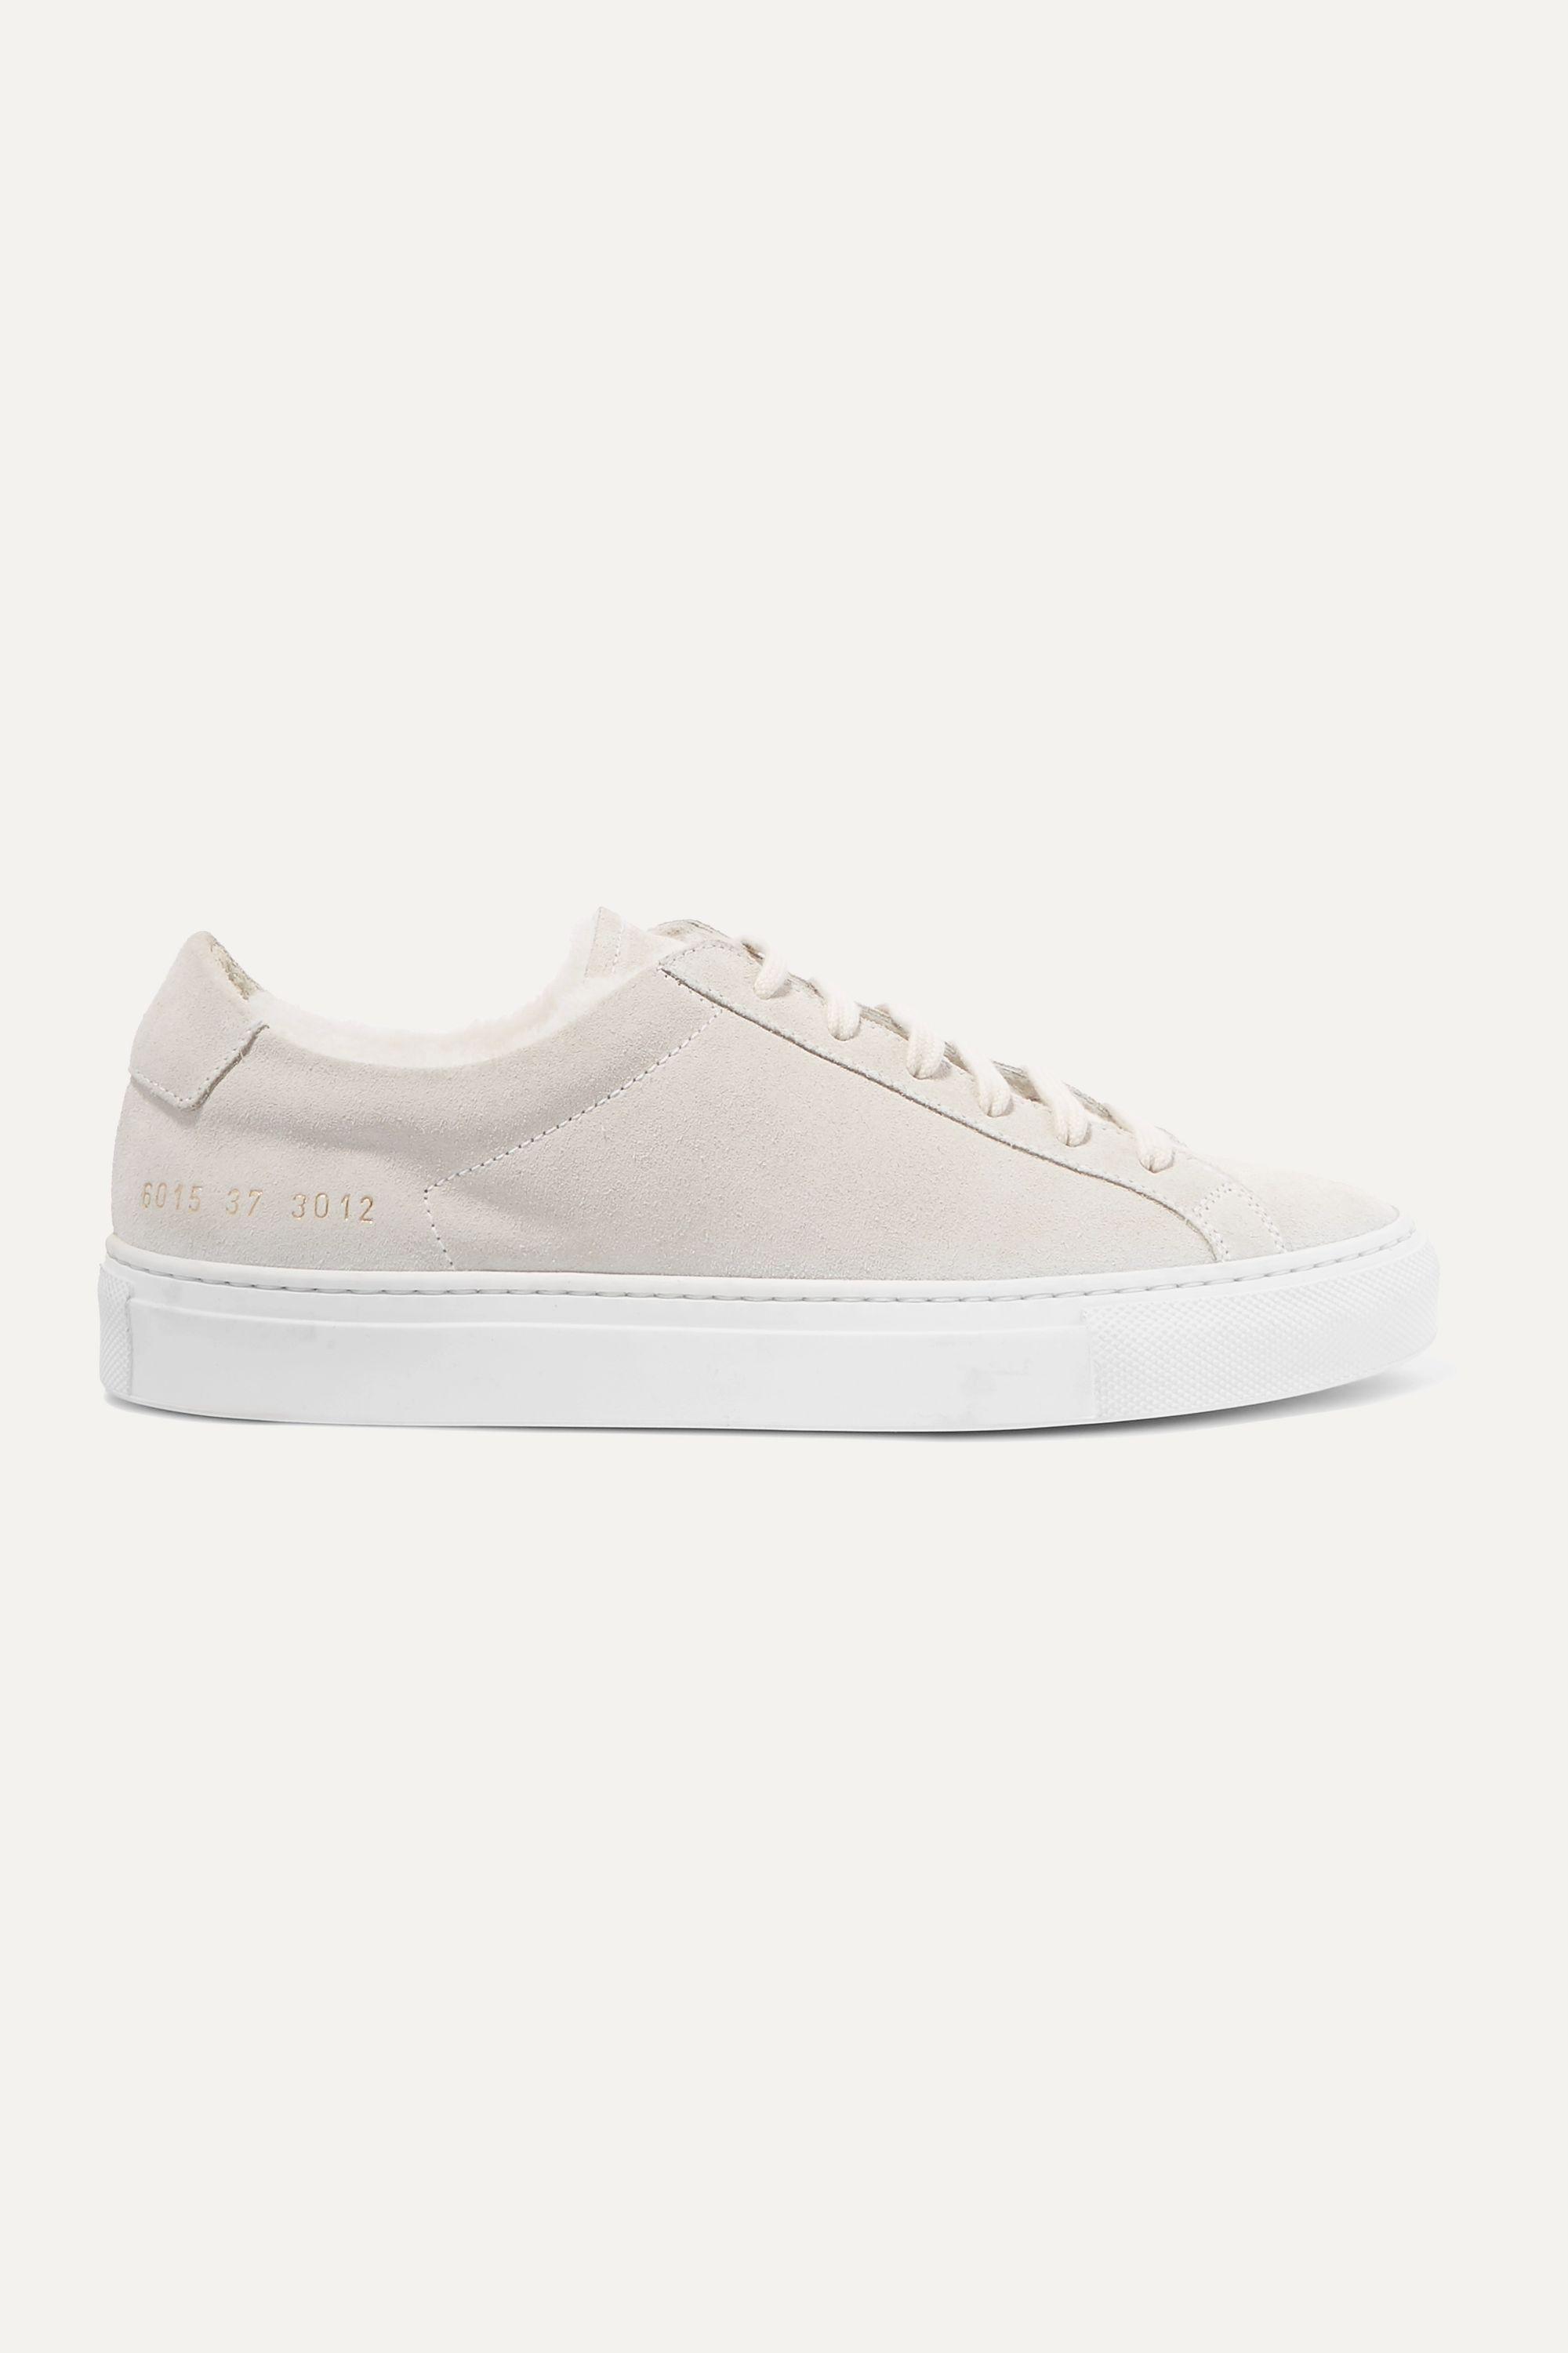 Common Projects Retro Low shearling-lined suede sneakers